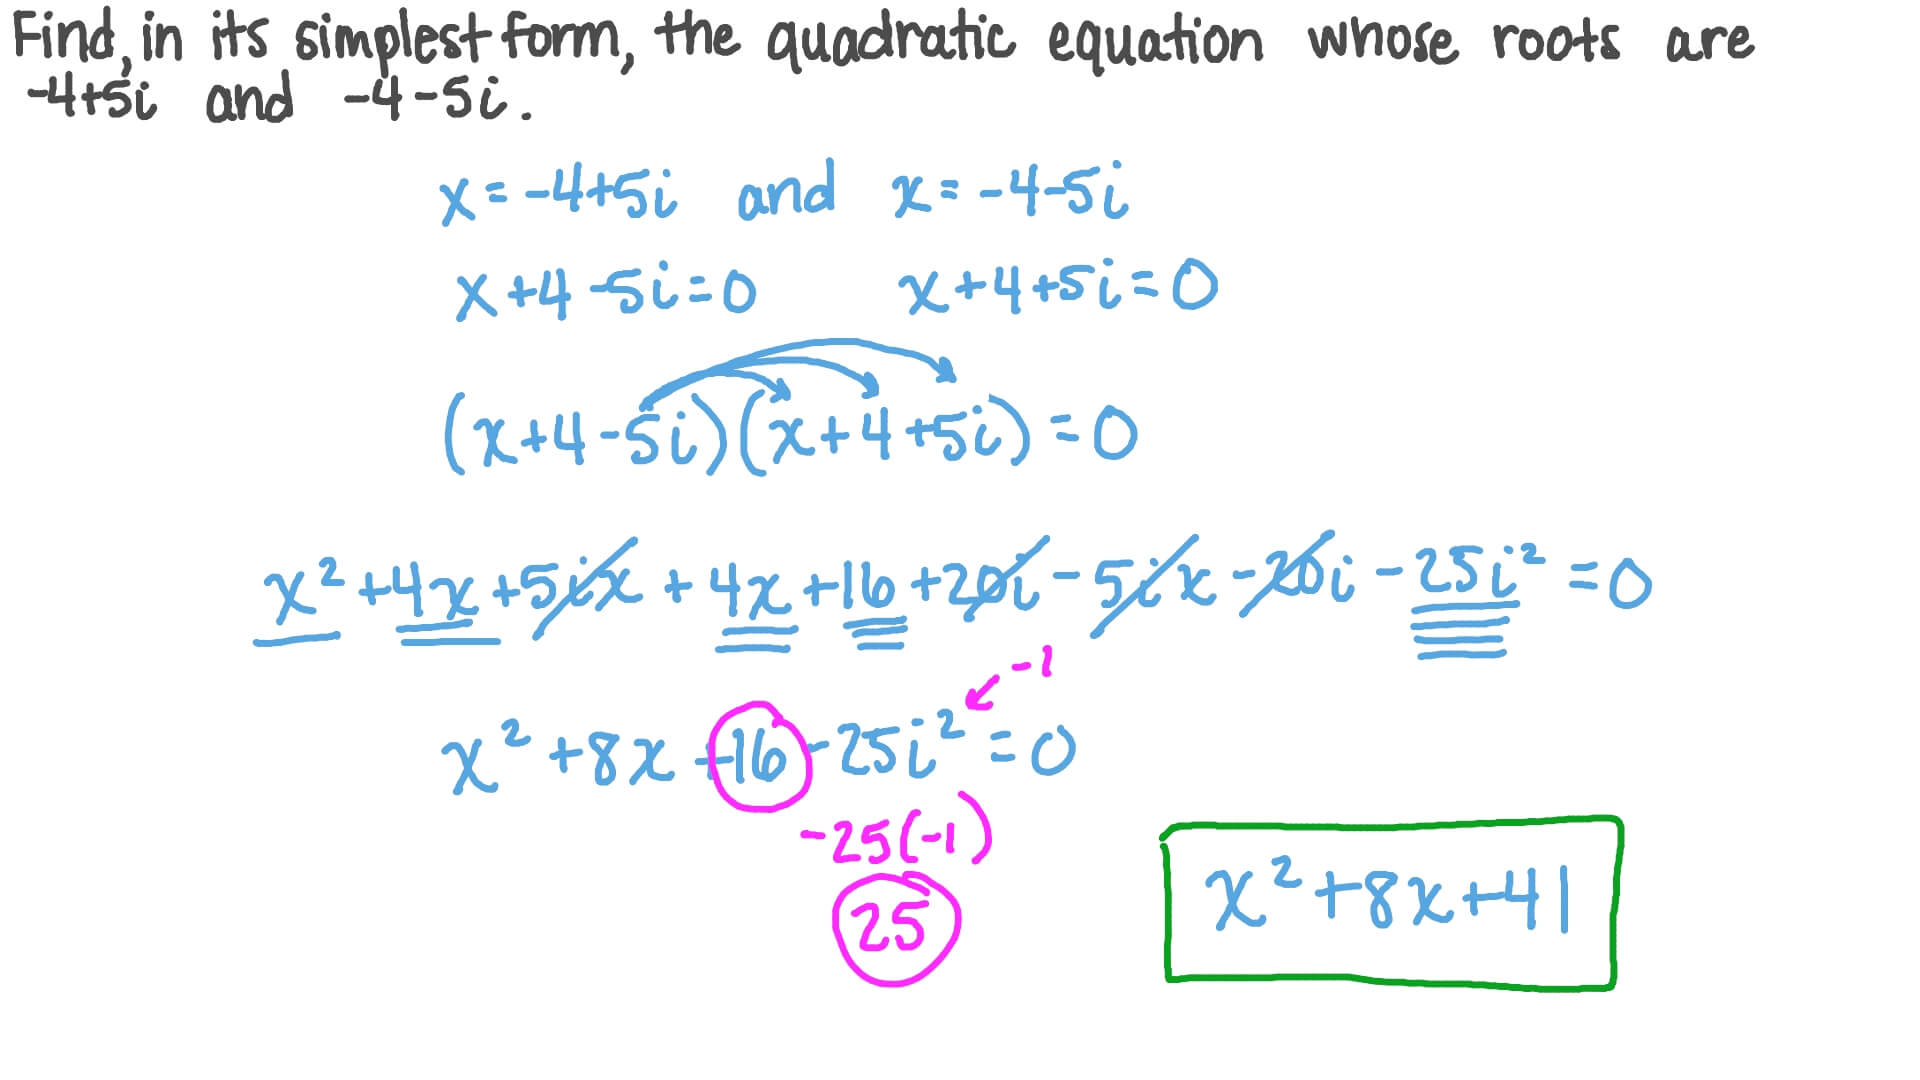 simplest form quadratic equations  Forming a Quadratic Equation in the Simplest Form given Its Roots Involving  Complex Numbers